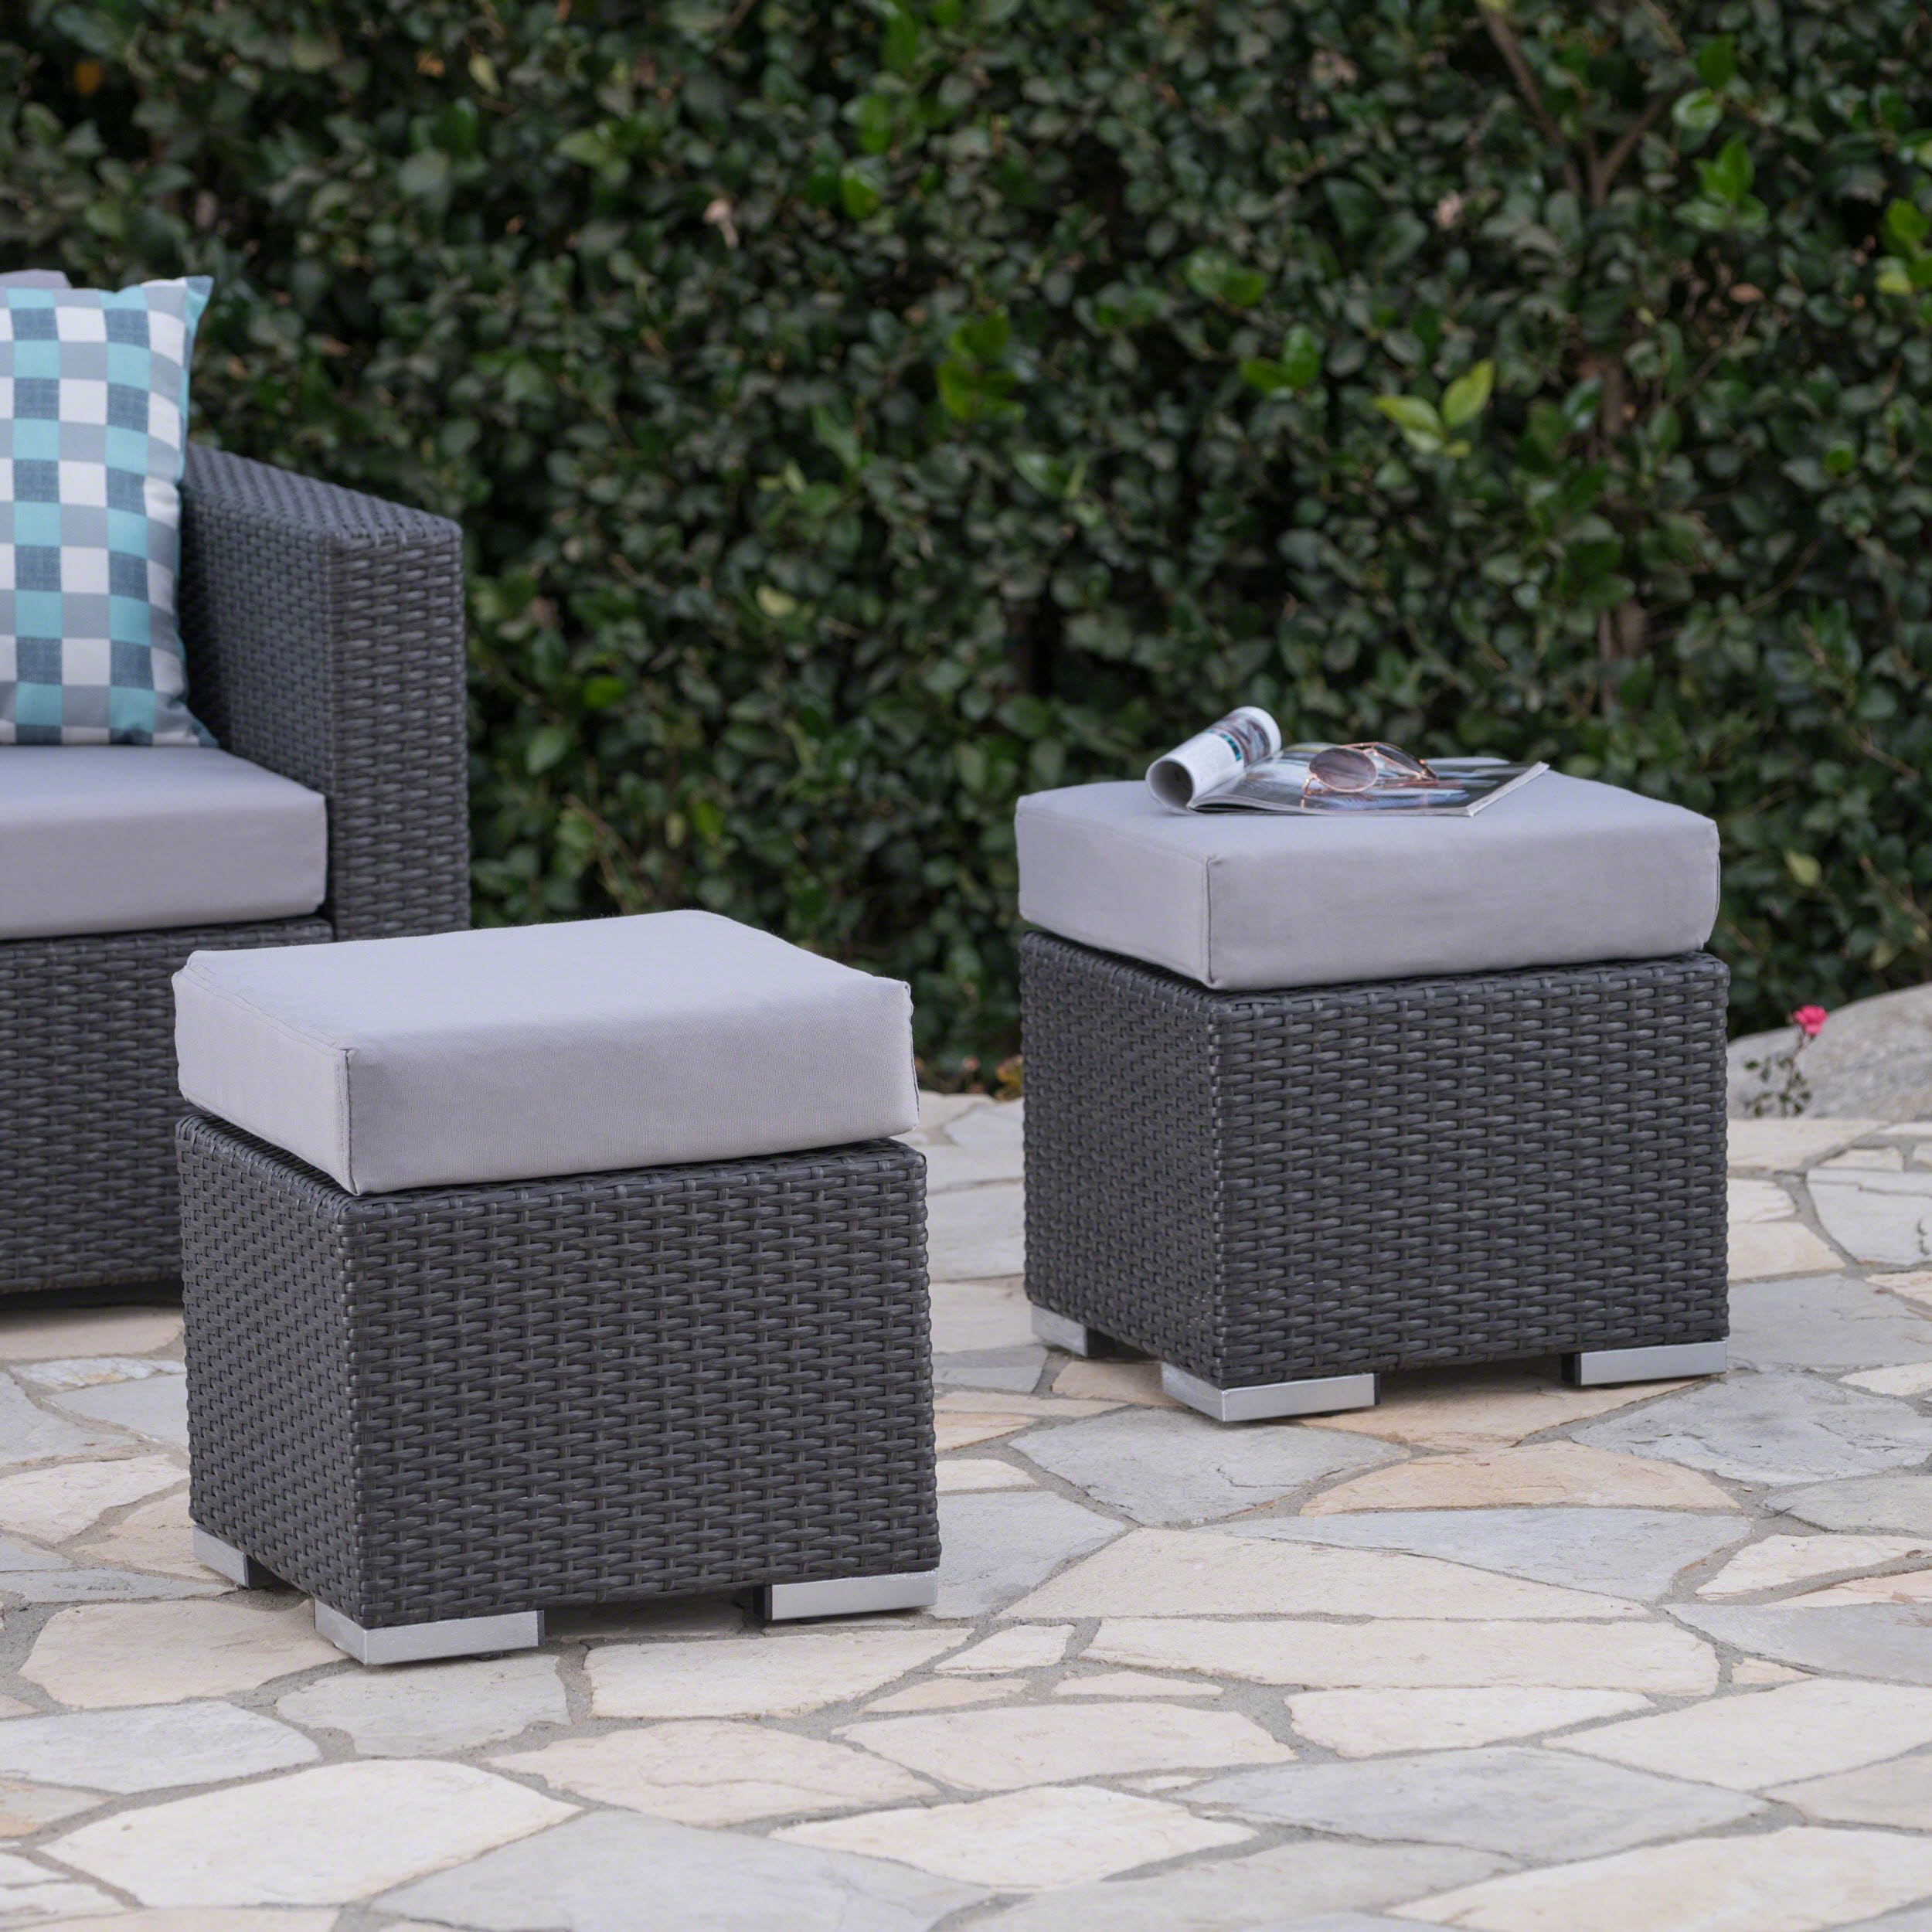 Great Deal Furniture Malibu Outdoor 16 Inch Grey Wicker Ottoman Seat with Silver Water Resistant Cushion (Set of 2)